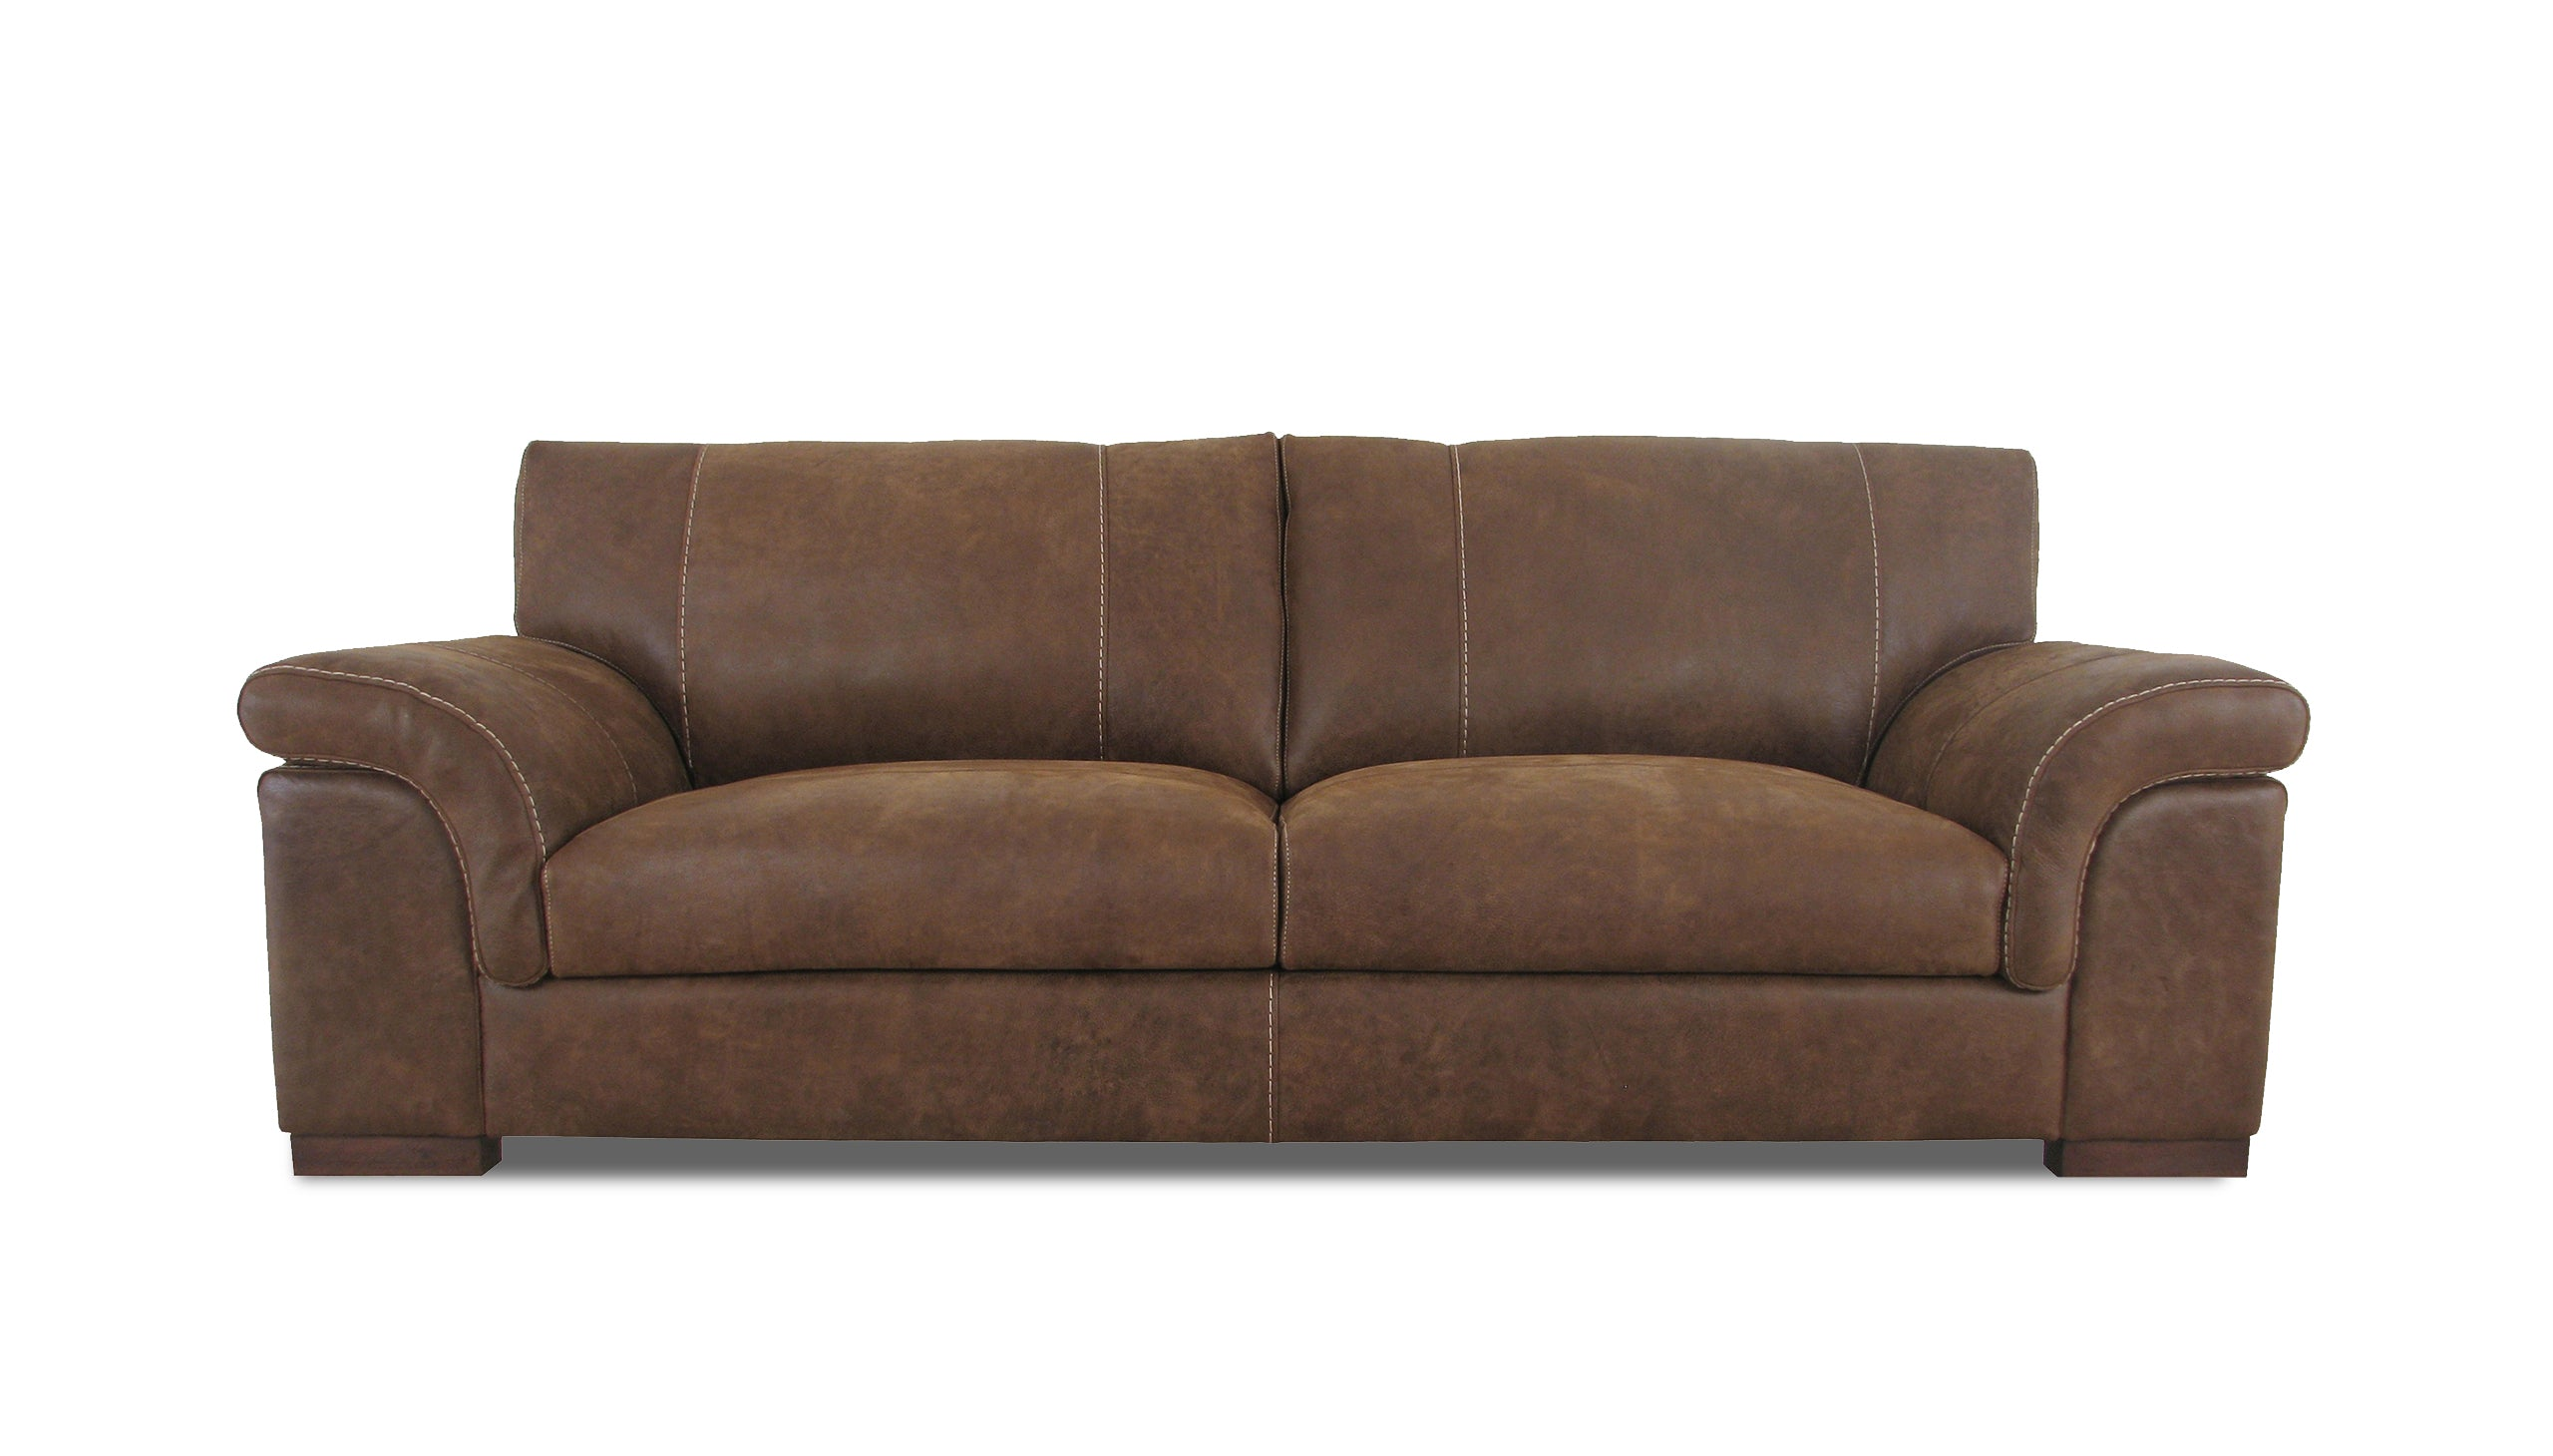 Guy 4 Seater Sofa in Leather - AHF Furniture & Carpets